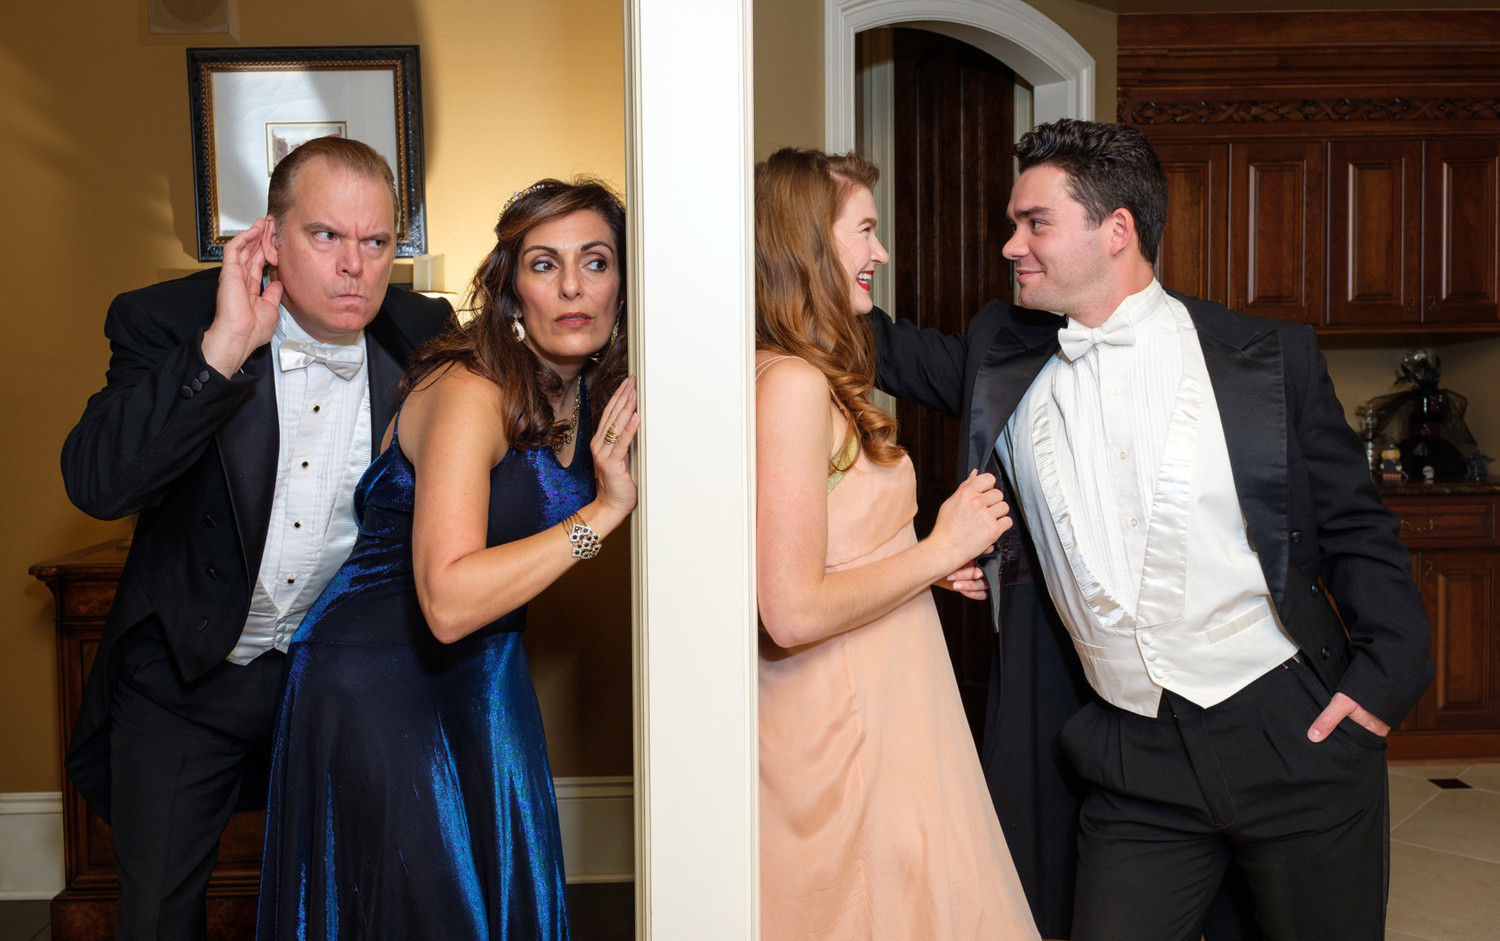 BWW Review: A COMEDY OF TENORS at Tipping Point Theatre is all Fun, Frenzy and Farce